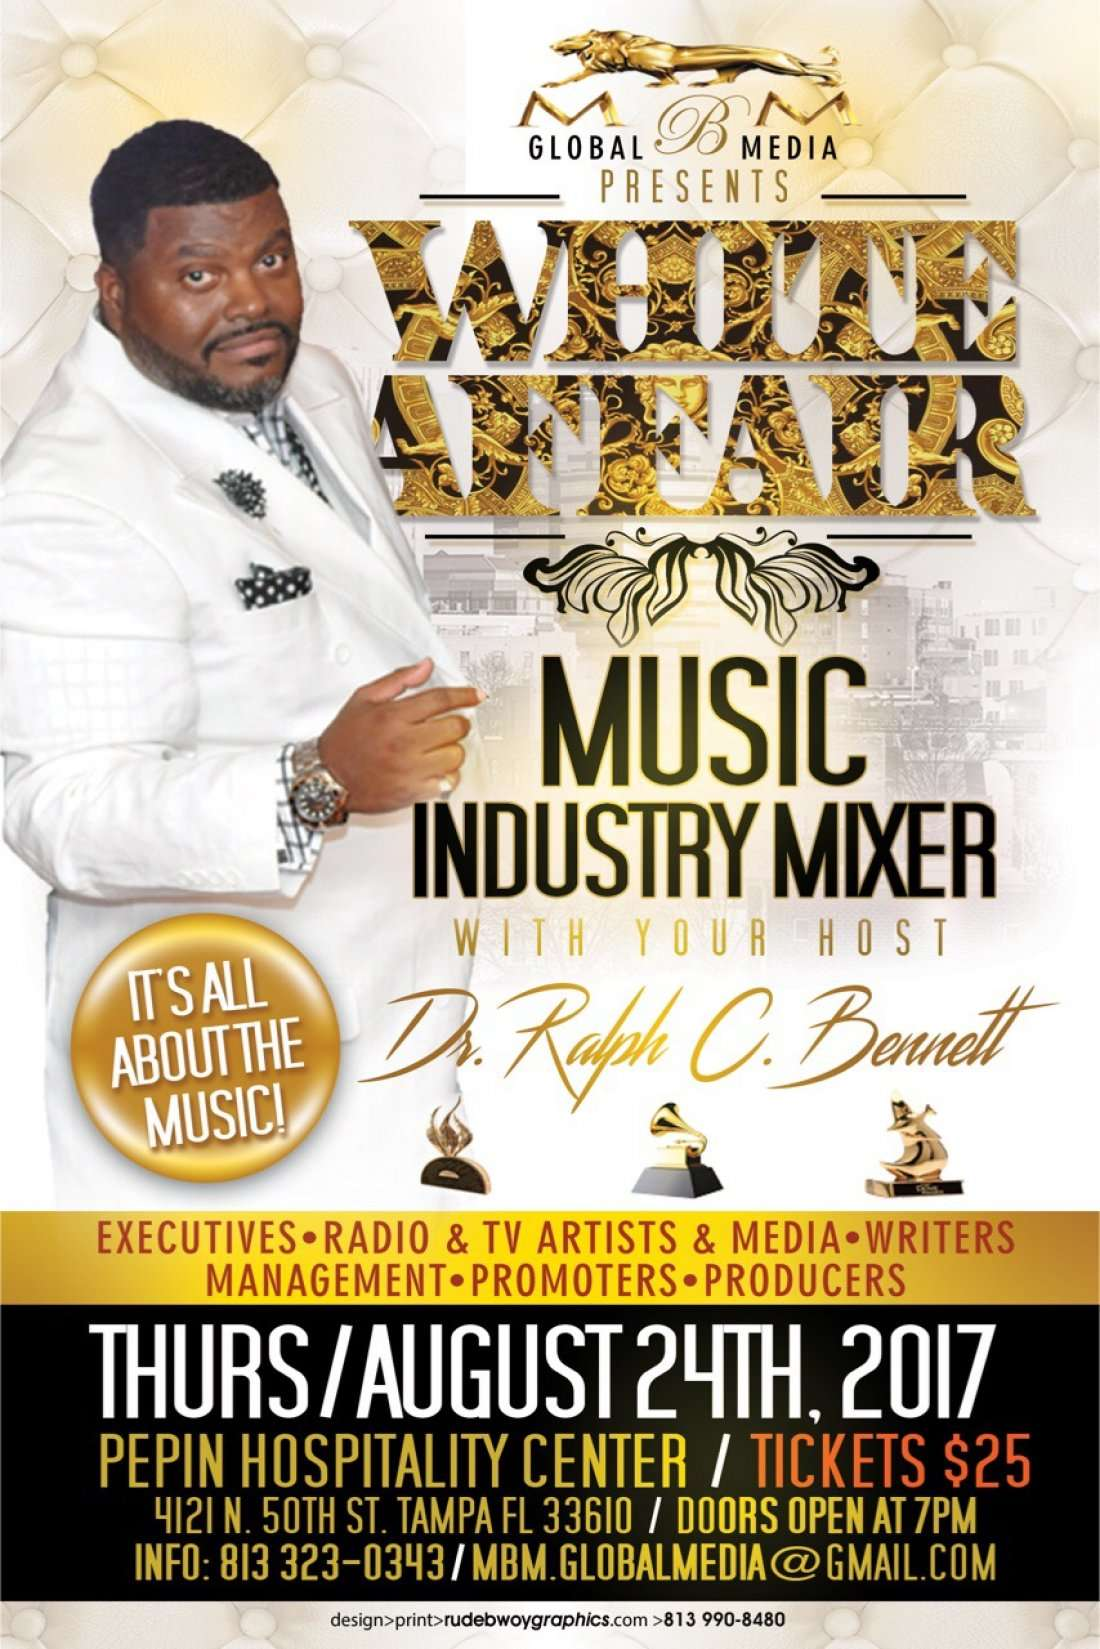 All White Affair Its all about the Music